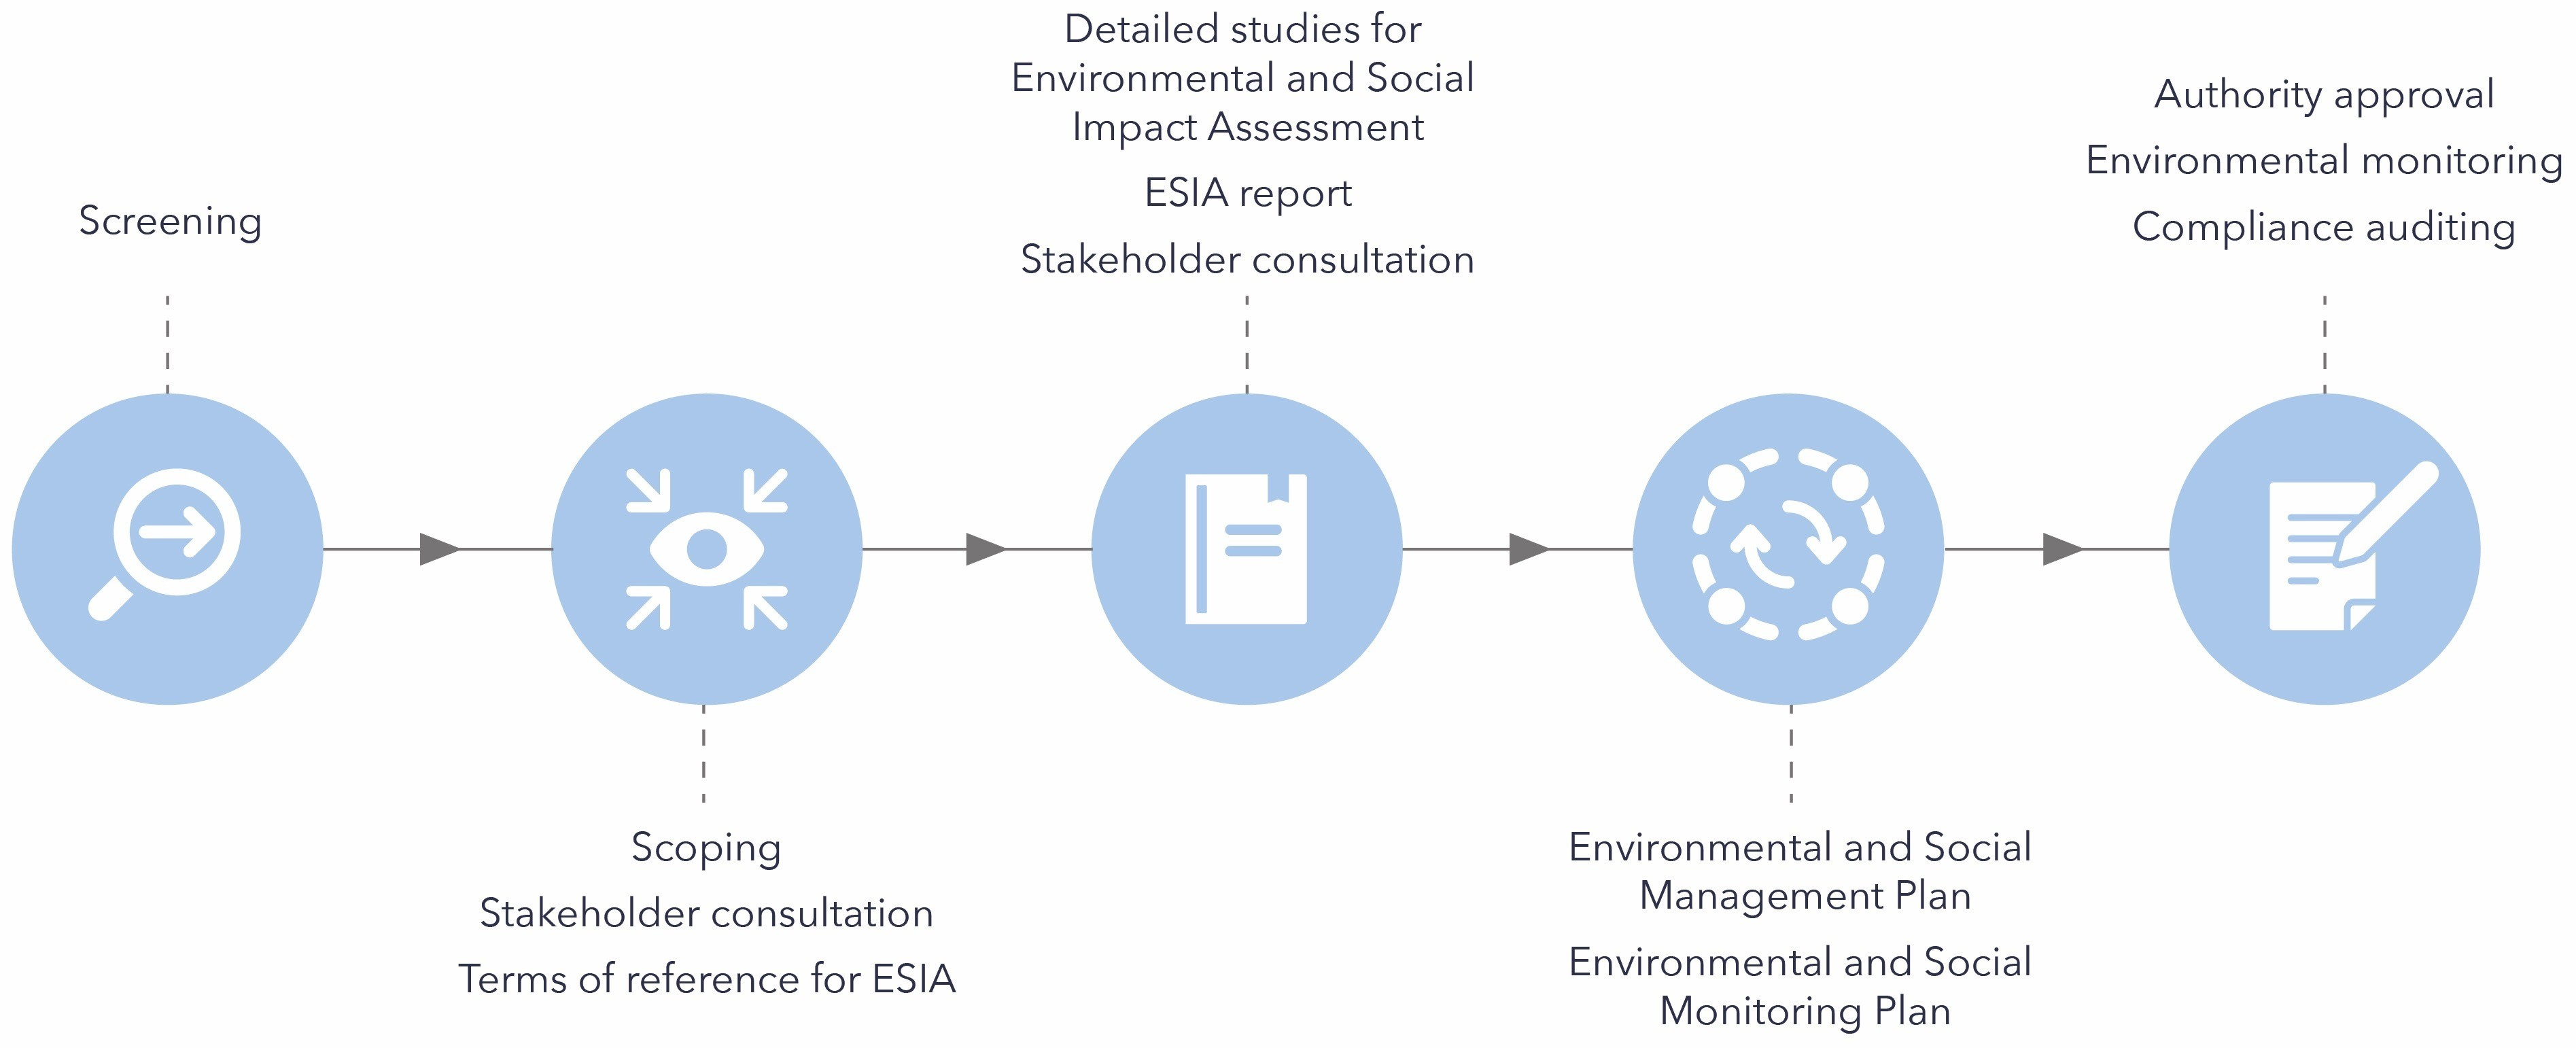 Key steps in the environmental and social impact assessment process